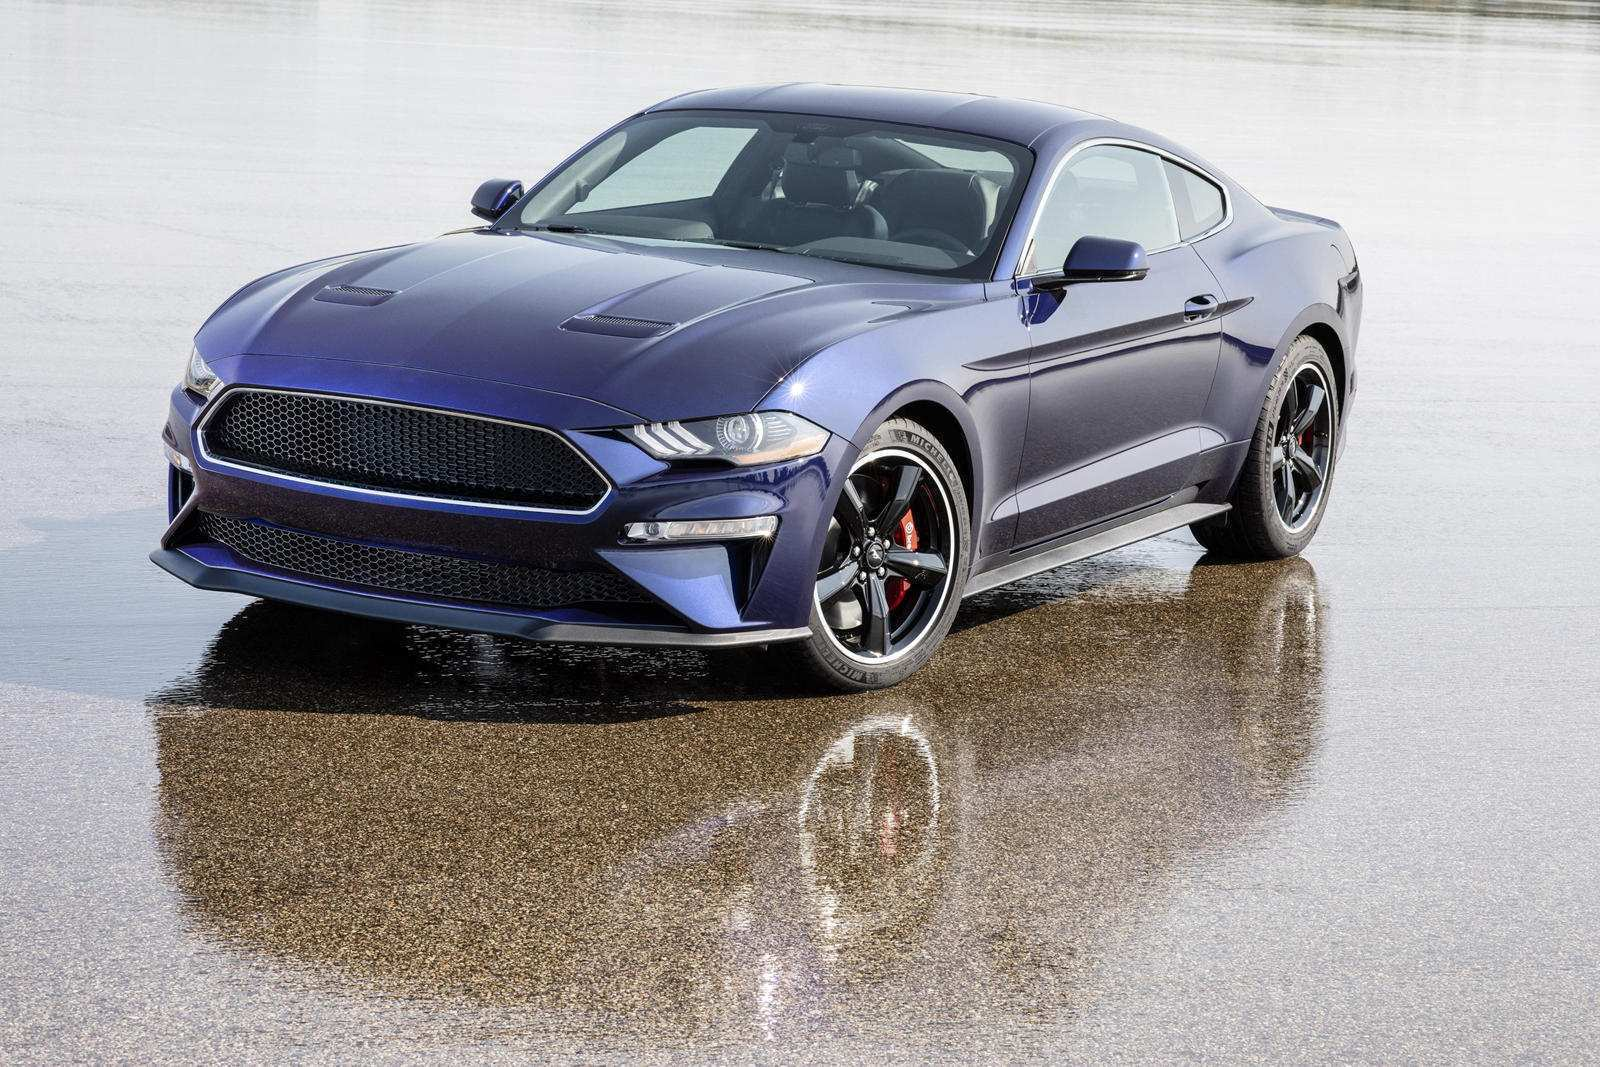 90 A 2020 Ford Mustang Price Design And Review